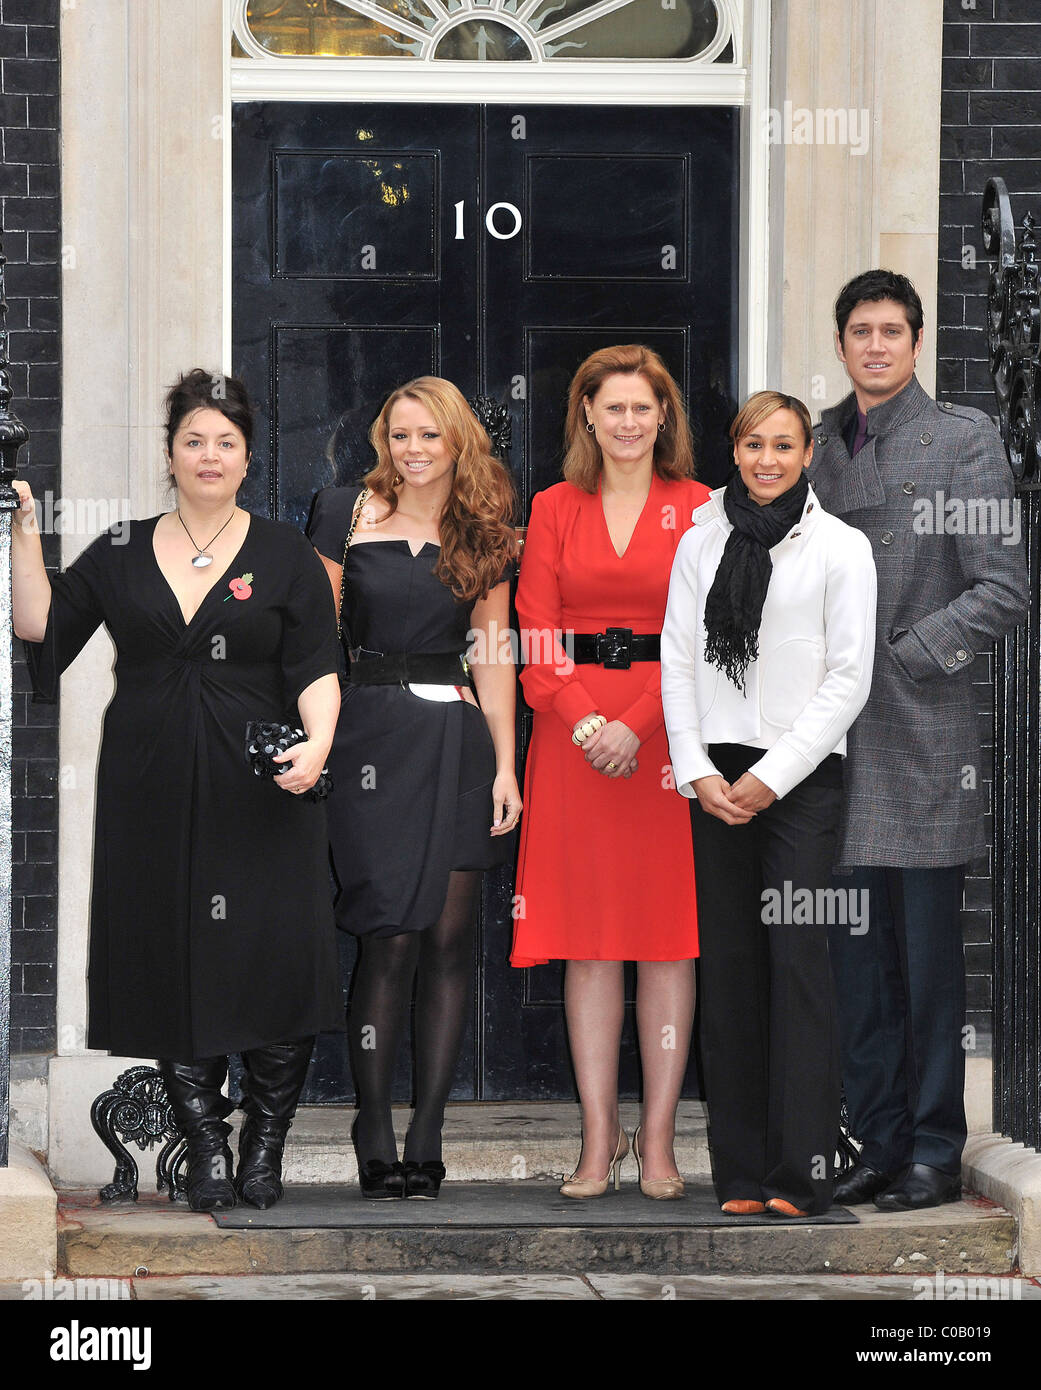 Ruth Jones, Kimberly Walsh, Sarah Brown, Jessica Ennis, Vernon Kay